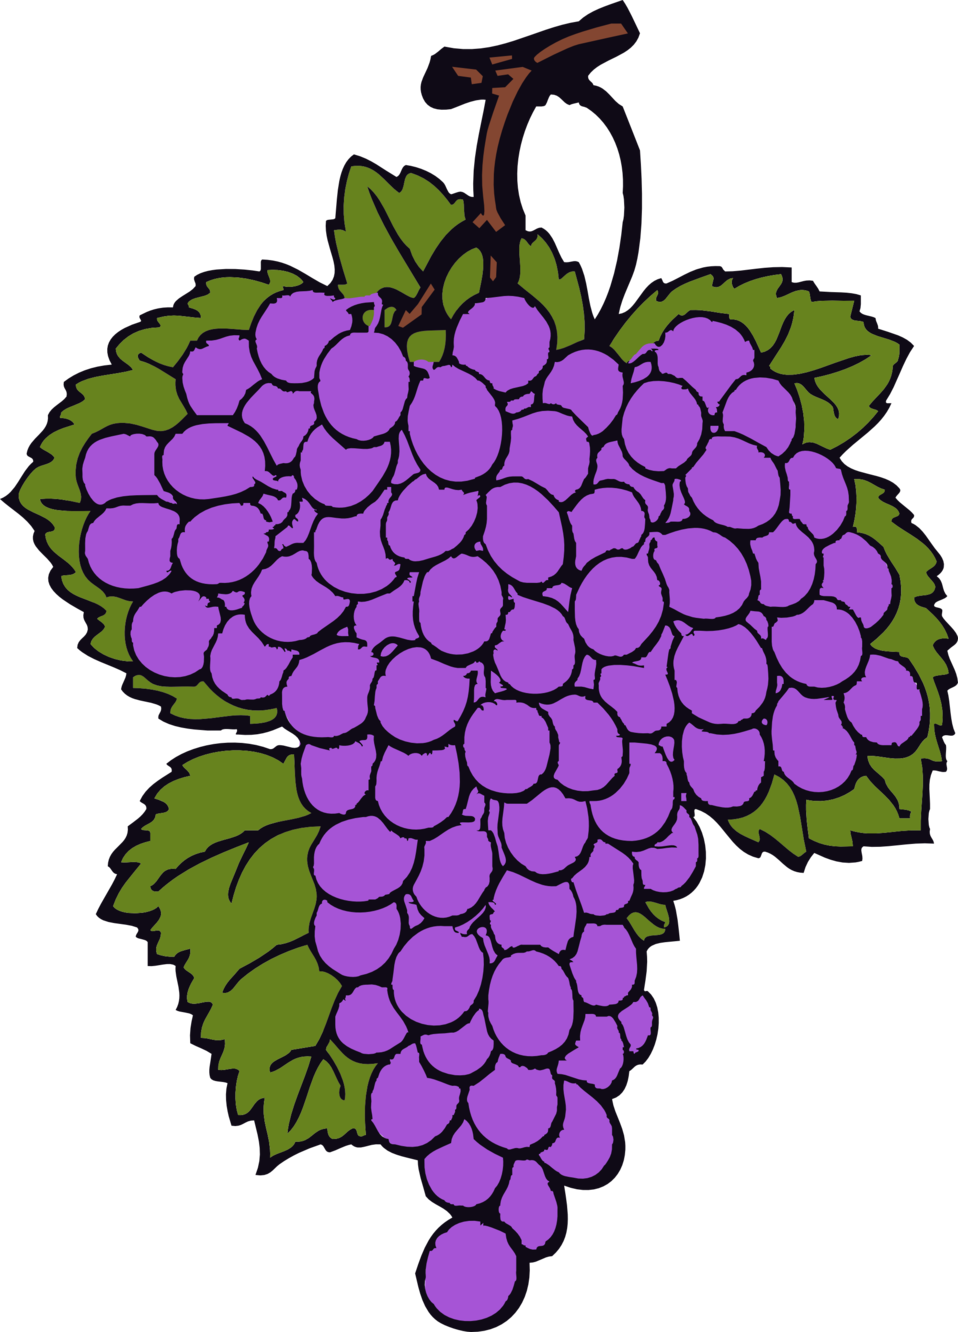 clipart royalty free library Public domain clip art. Grapevine clipart artwork